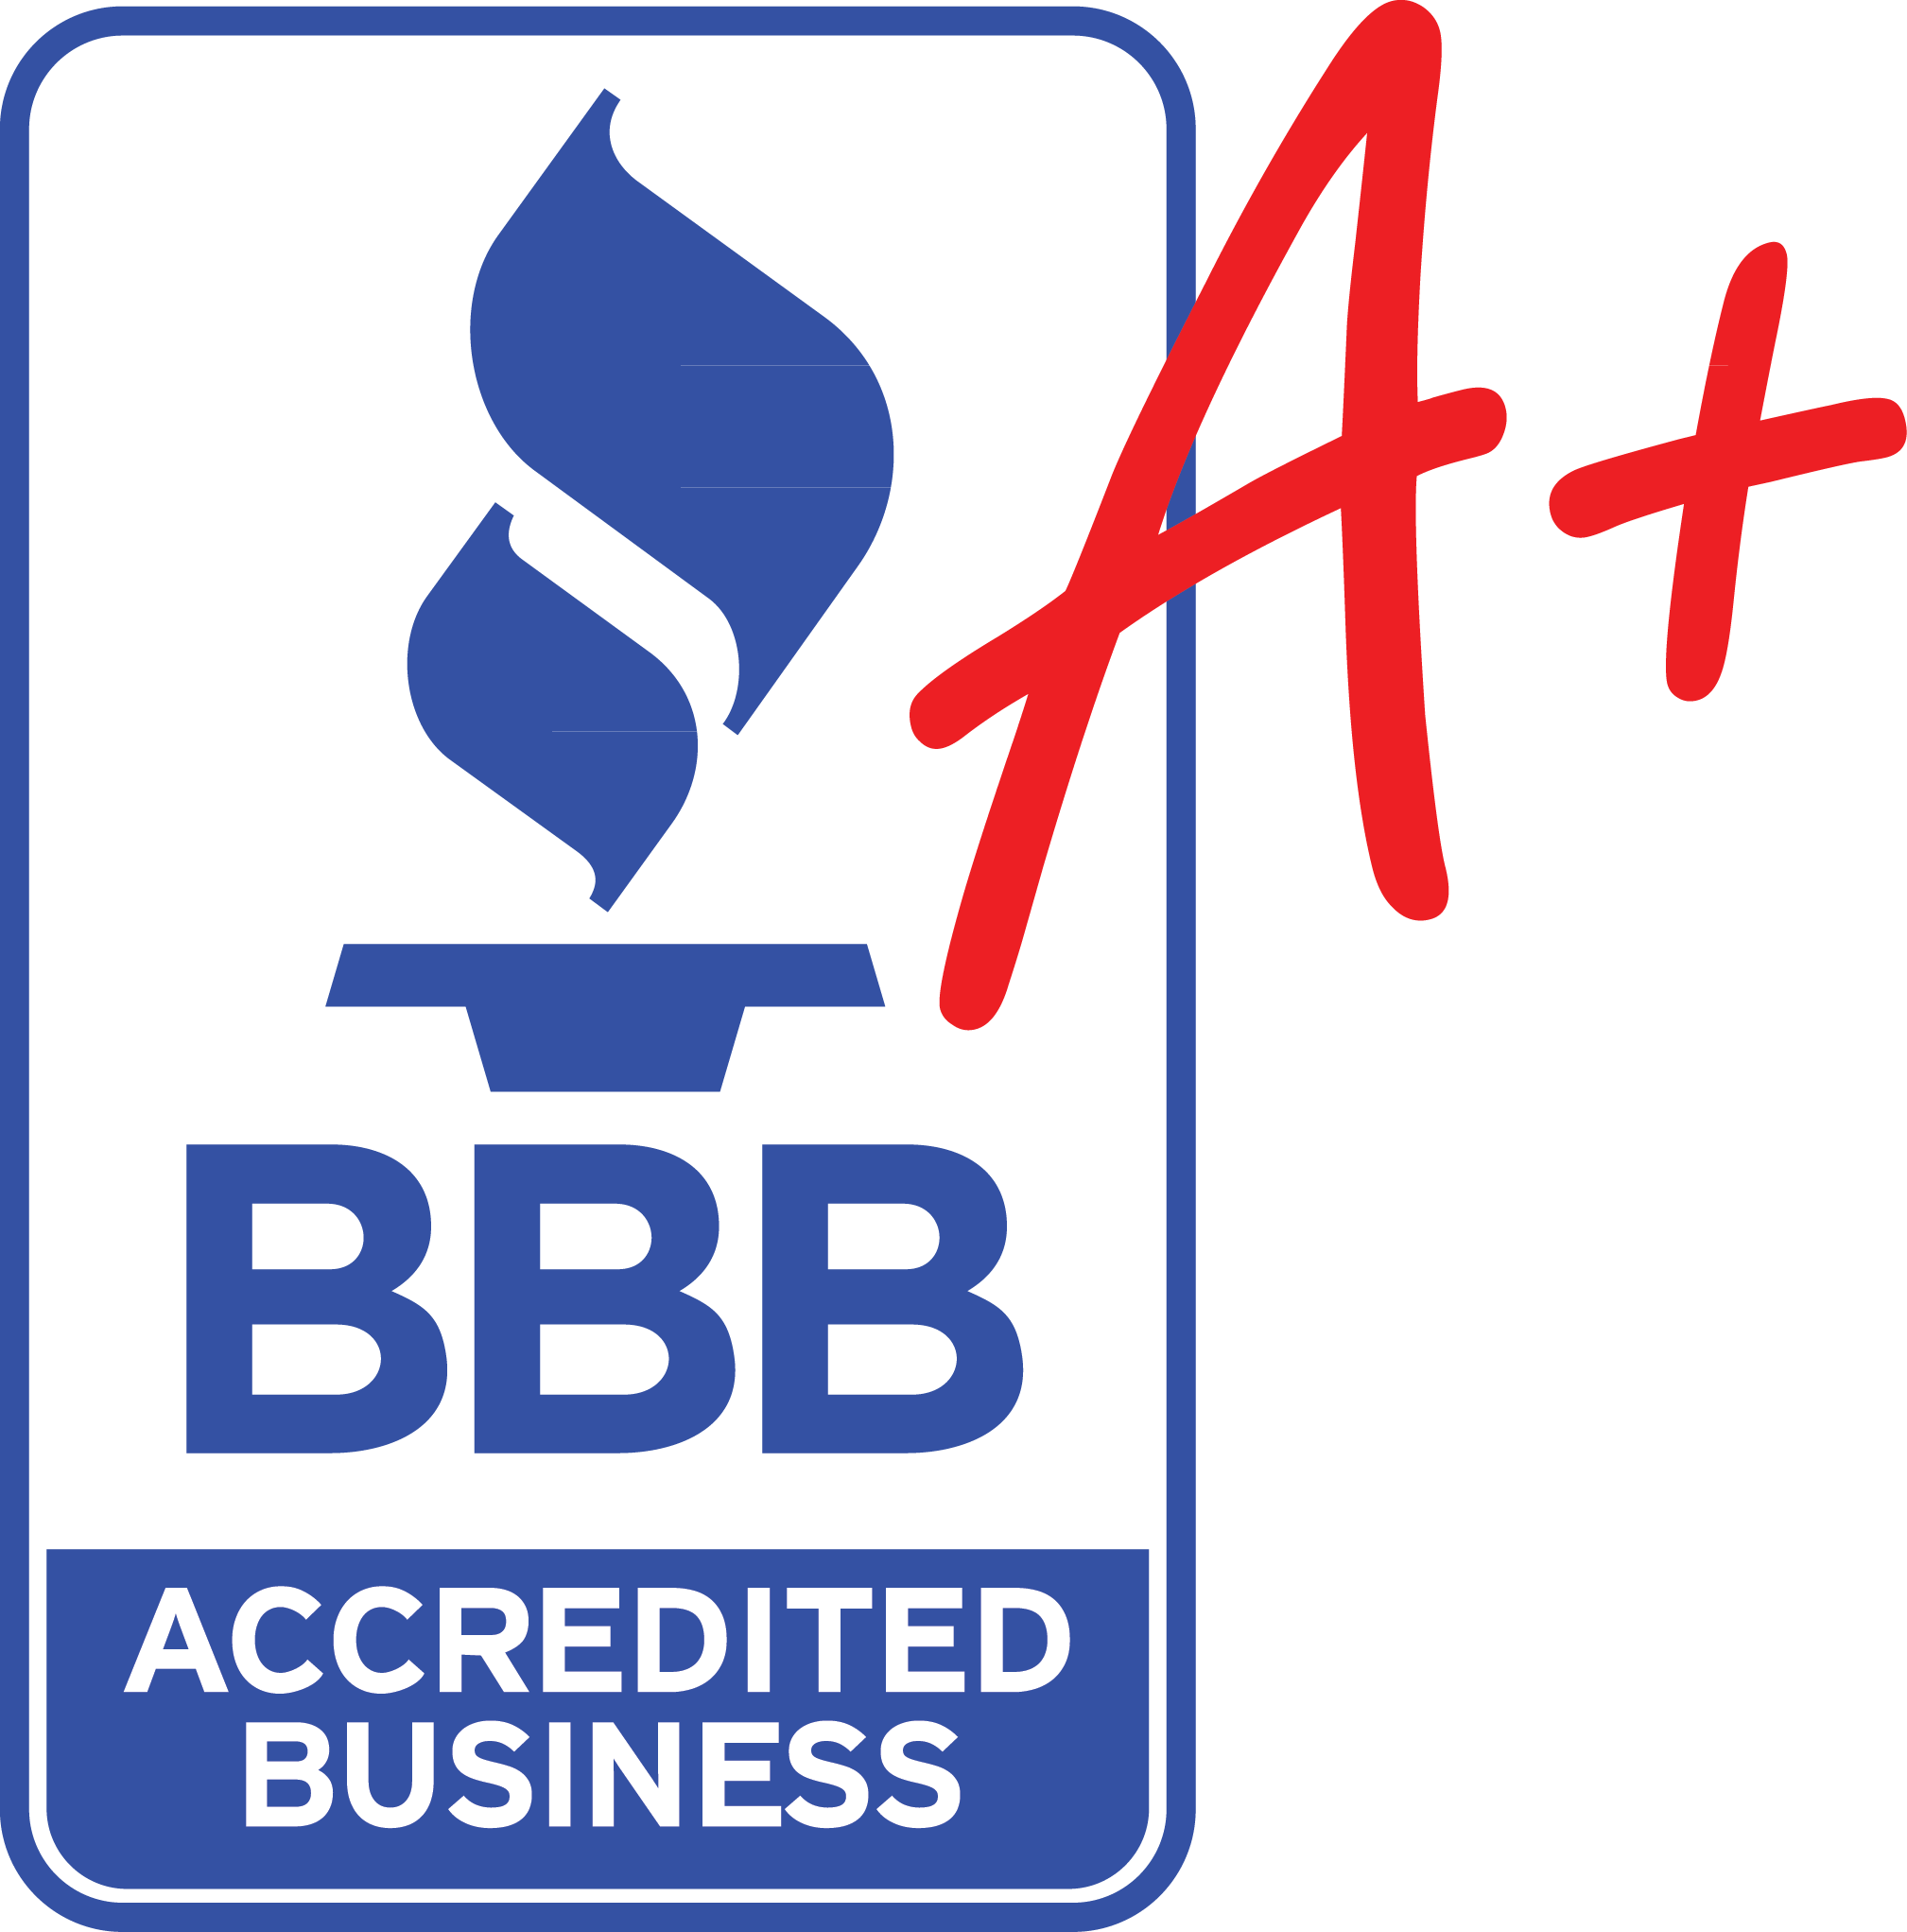 BBB Accredited Busines